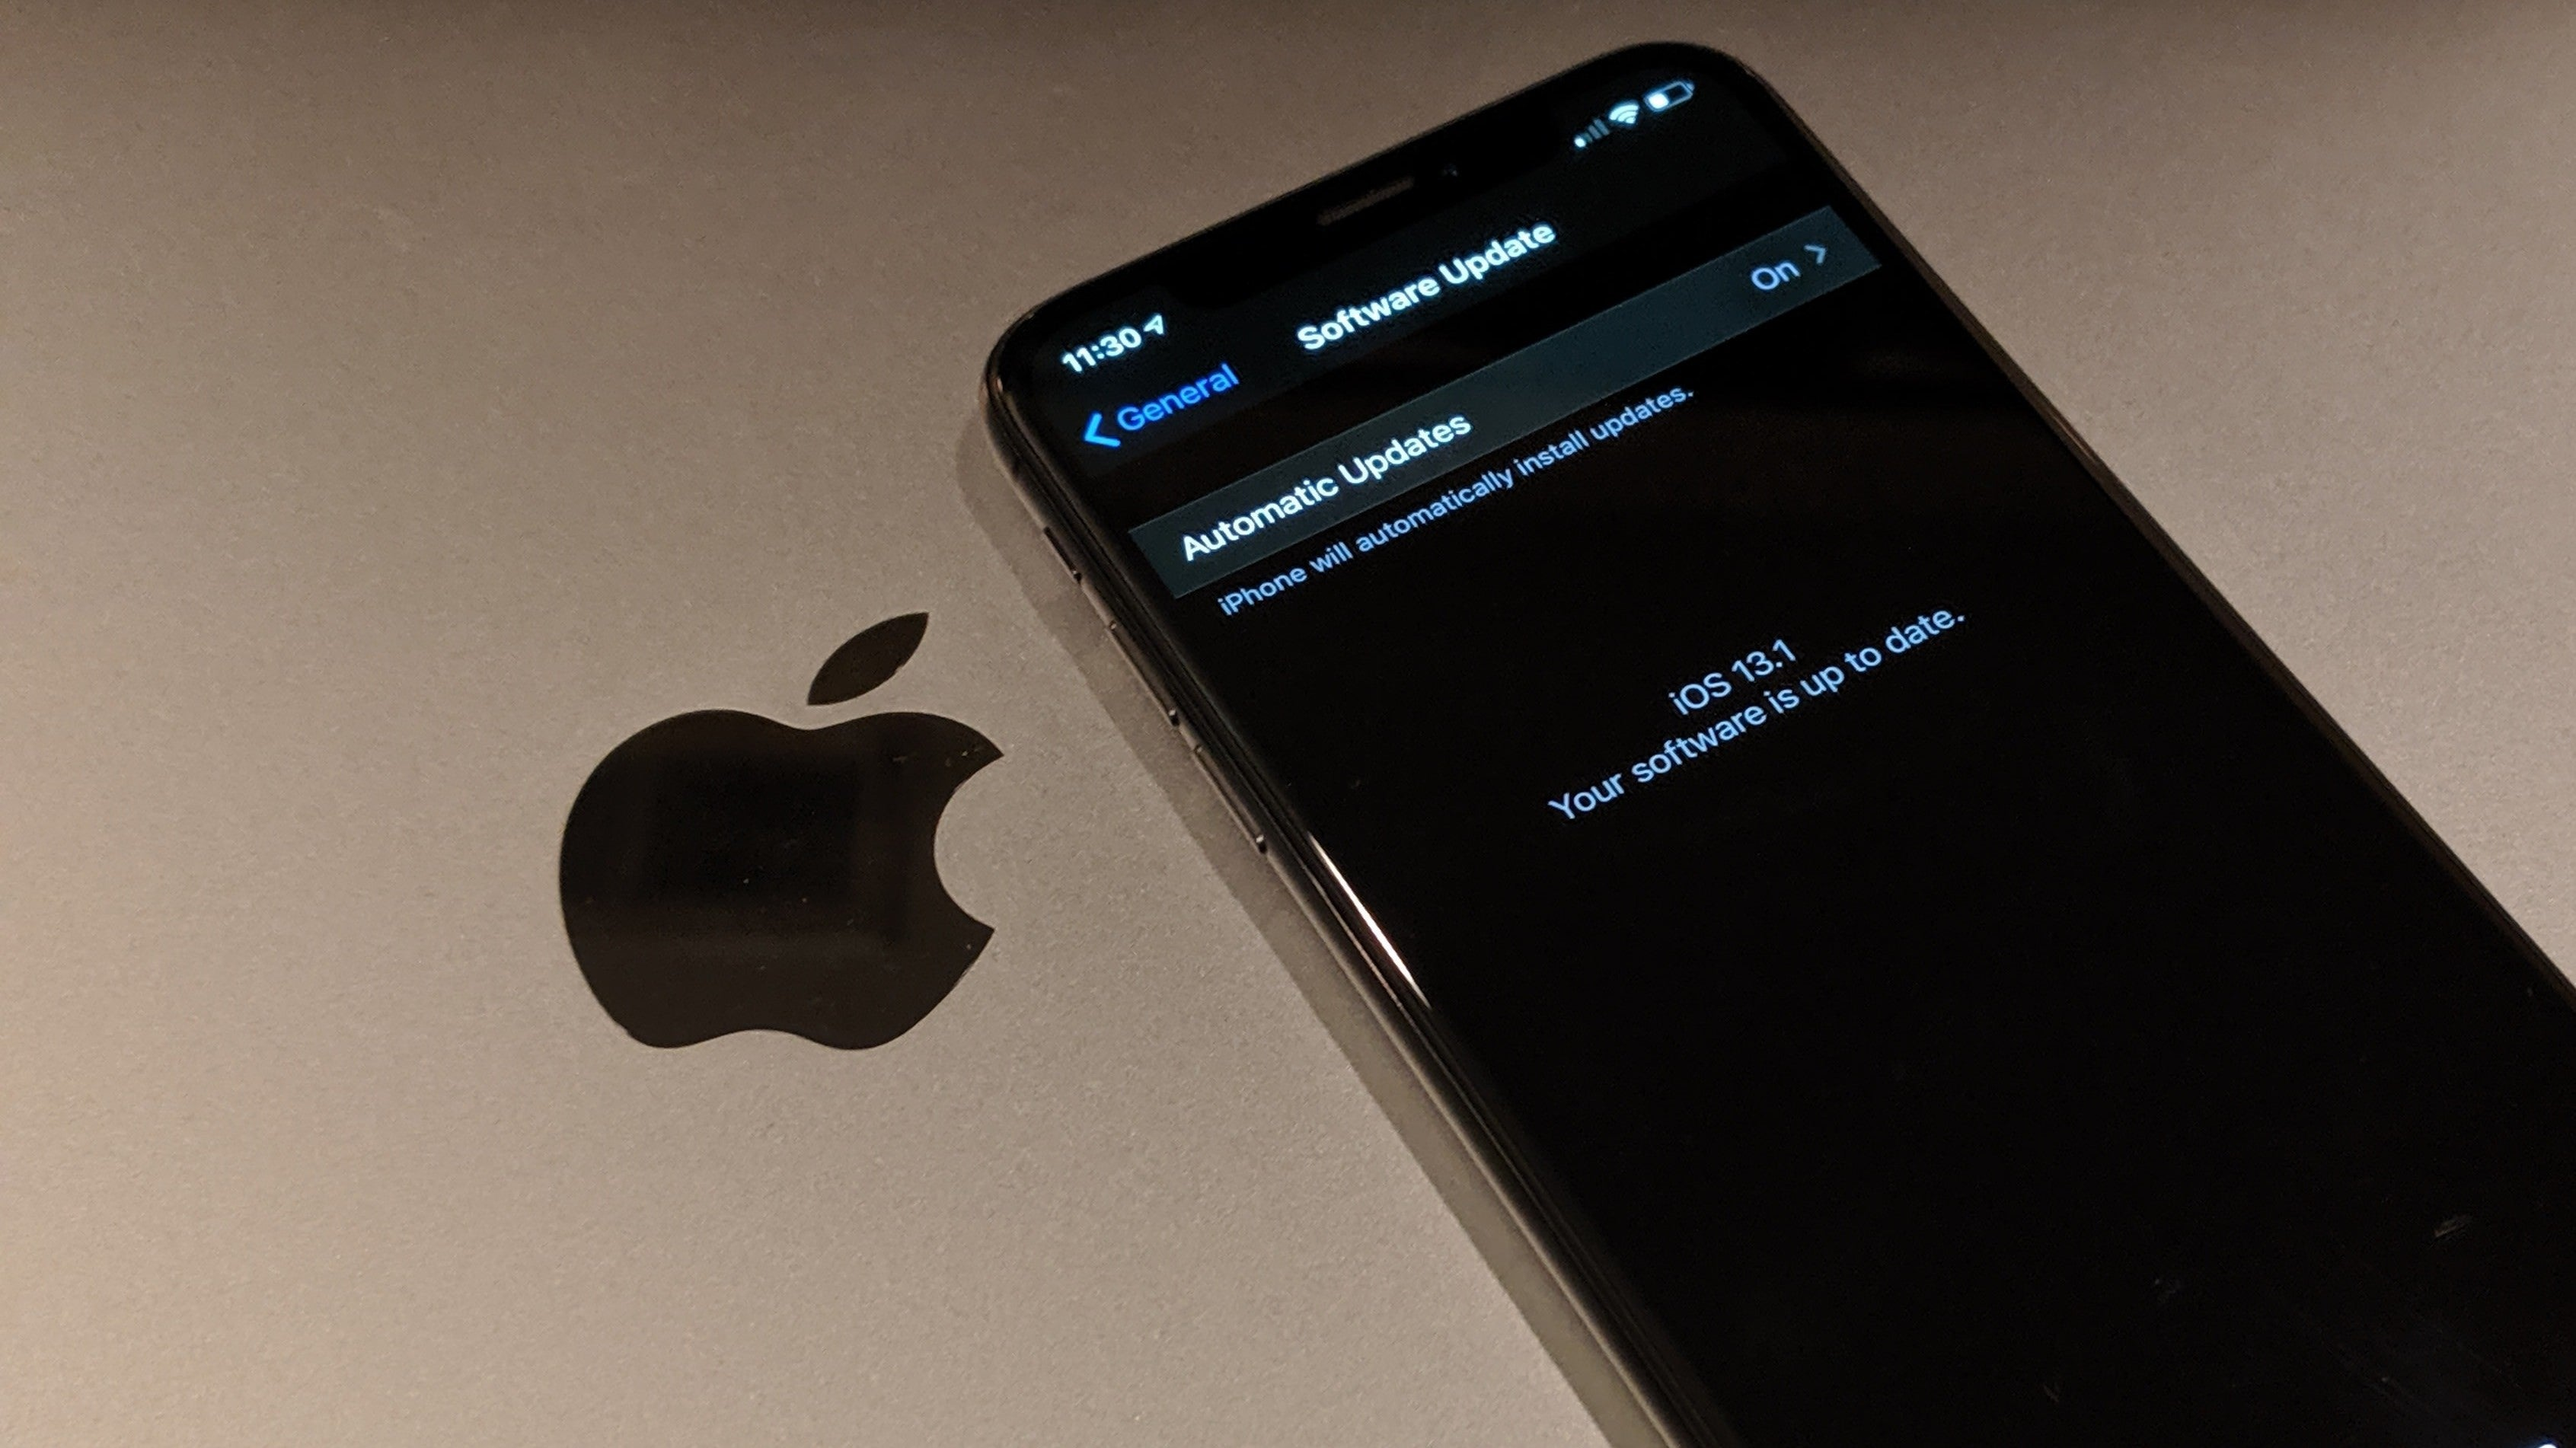 Restore Missing iPhone Features With The iOS 13.1 Beta